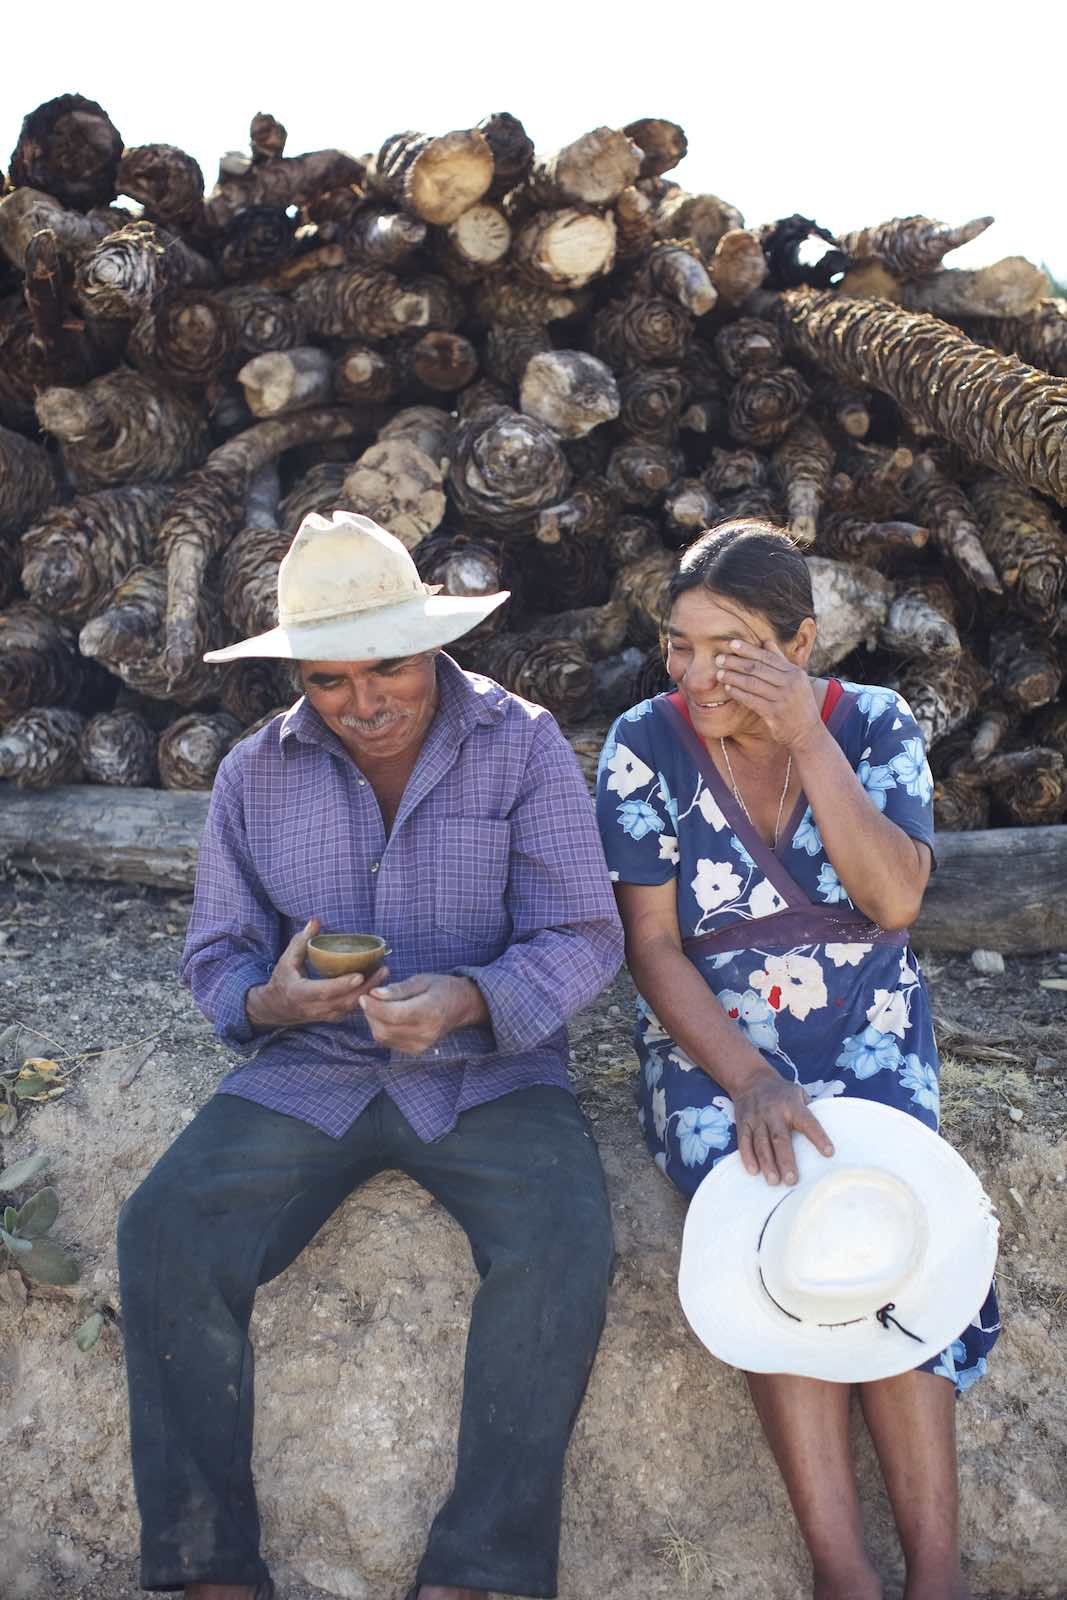 Jody Horton Photography - Man and woman sitting in front of smoked piñas.